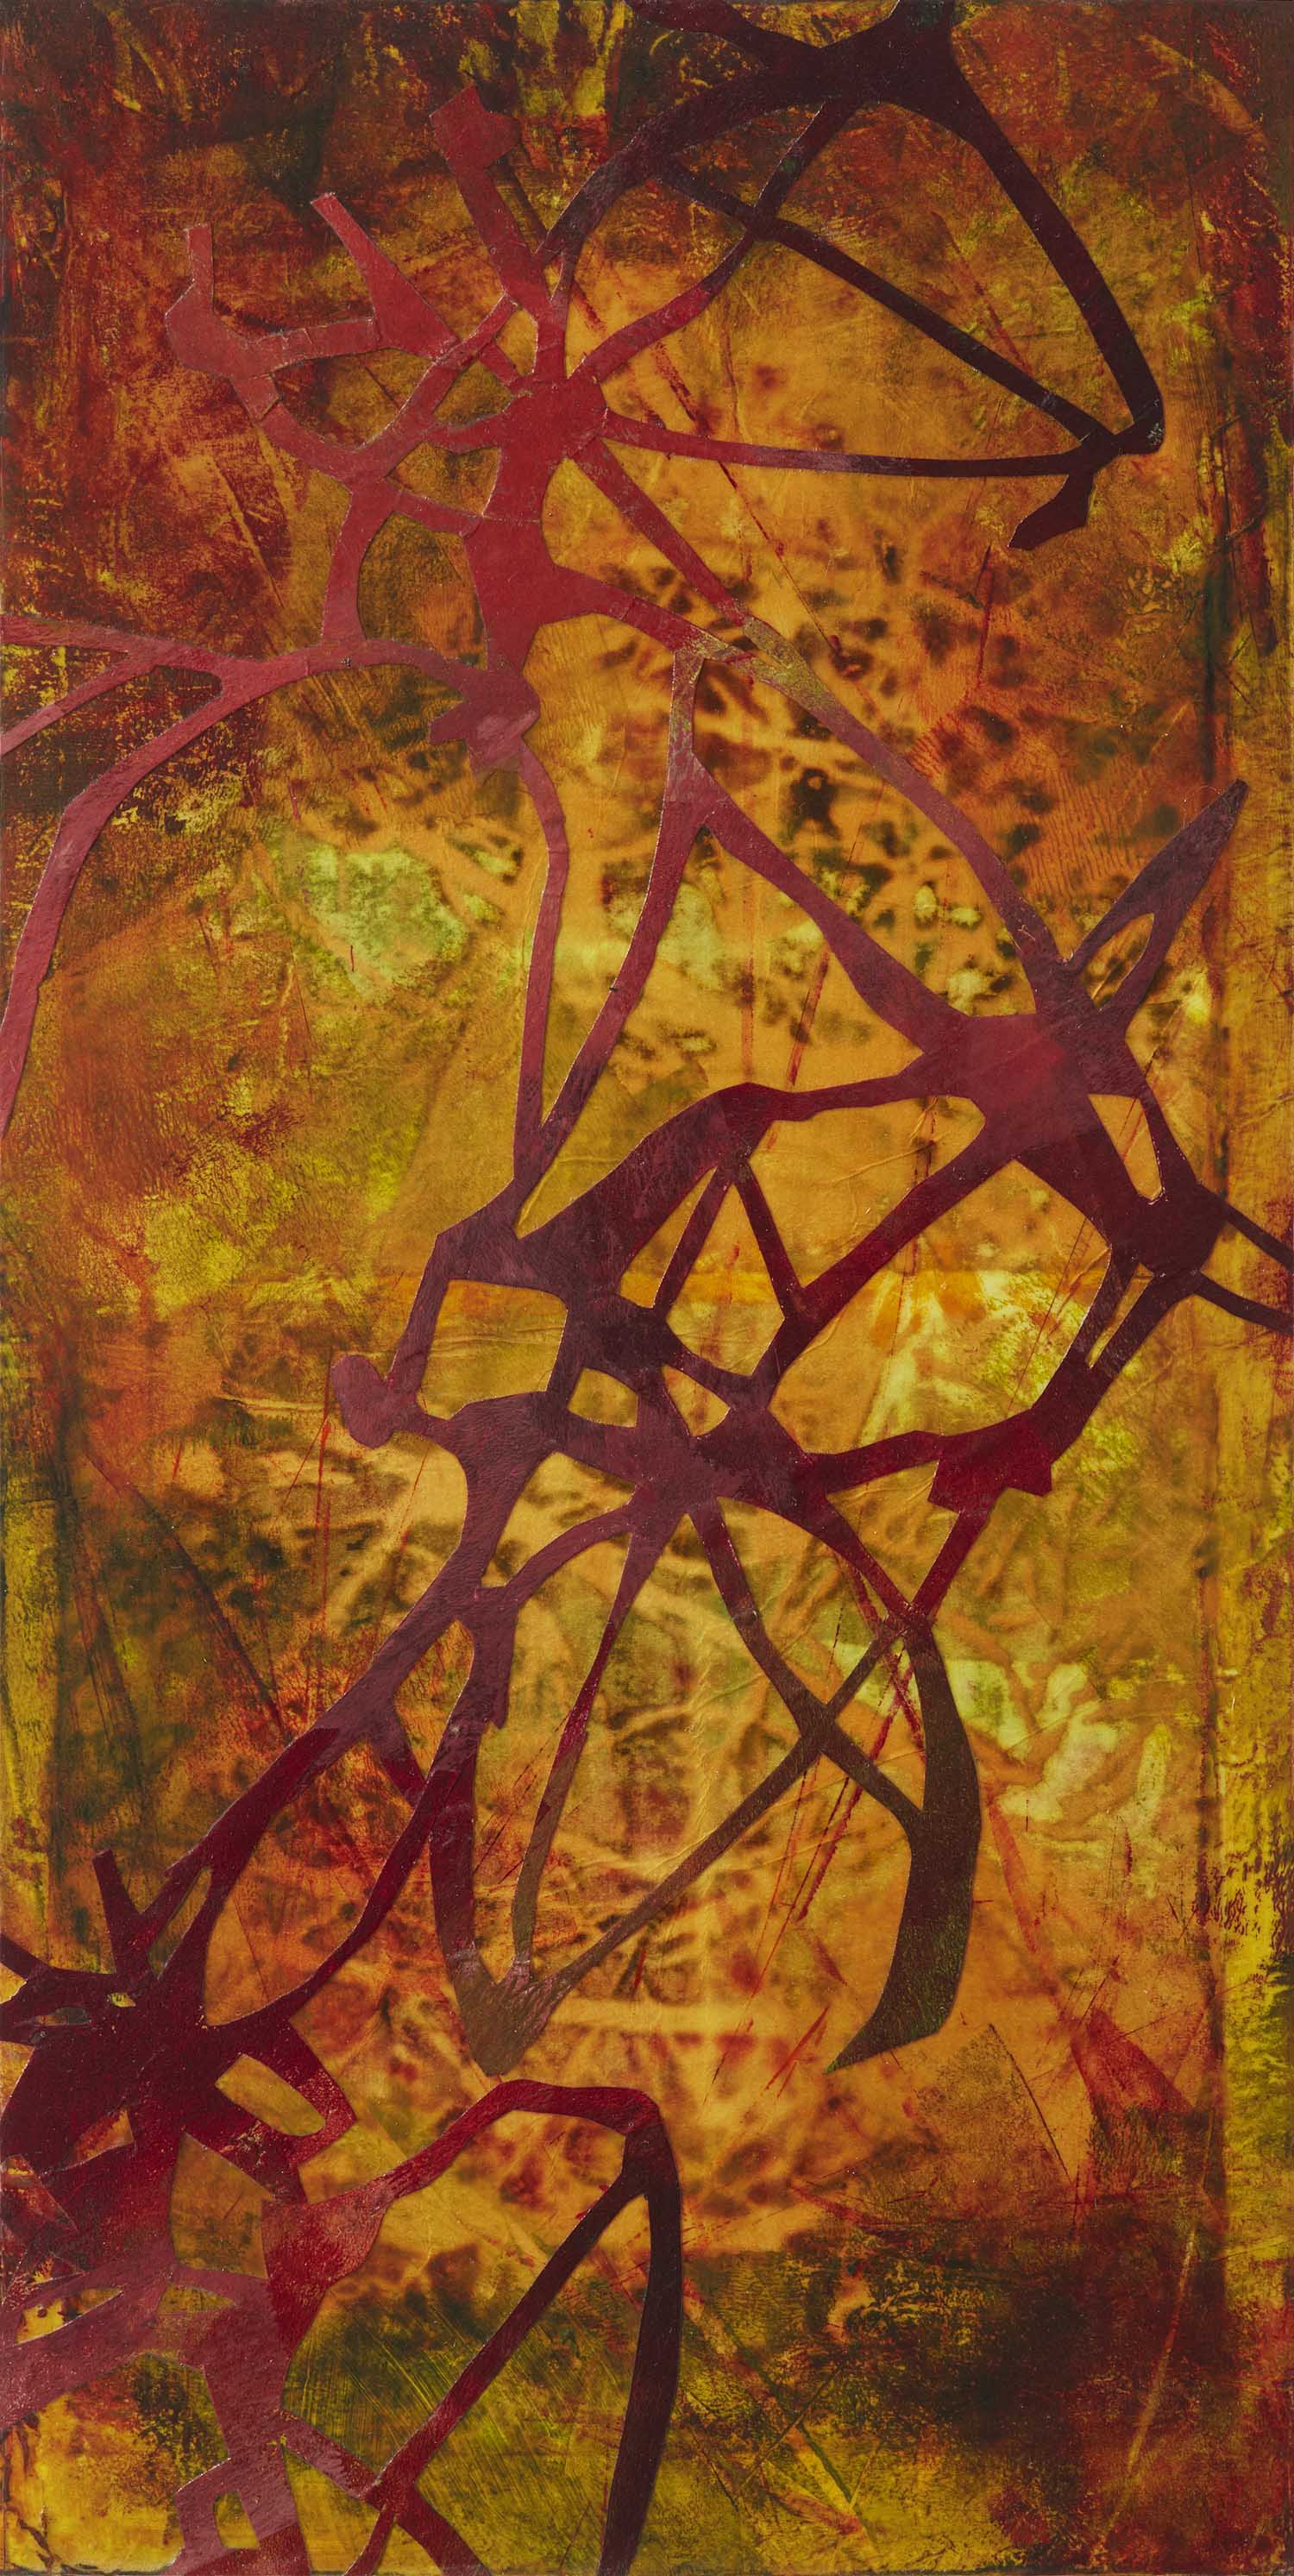 Systems Within by St. Paul, MN multimedia artist, Amy Tillotson